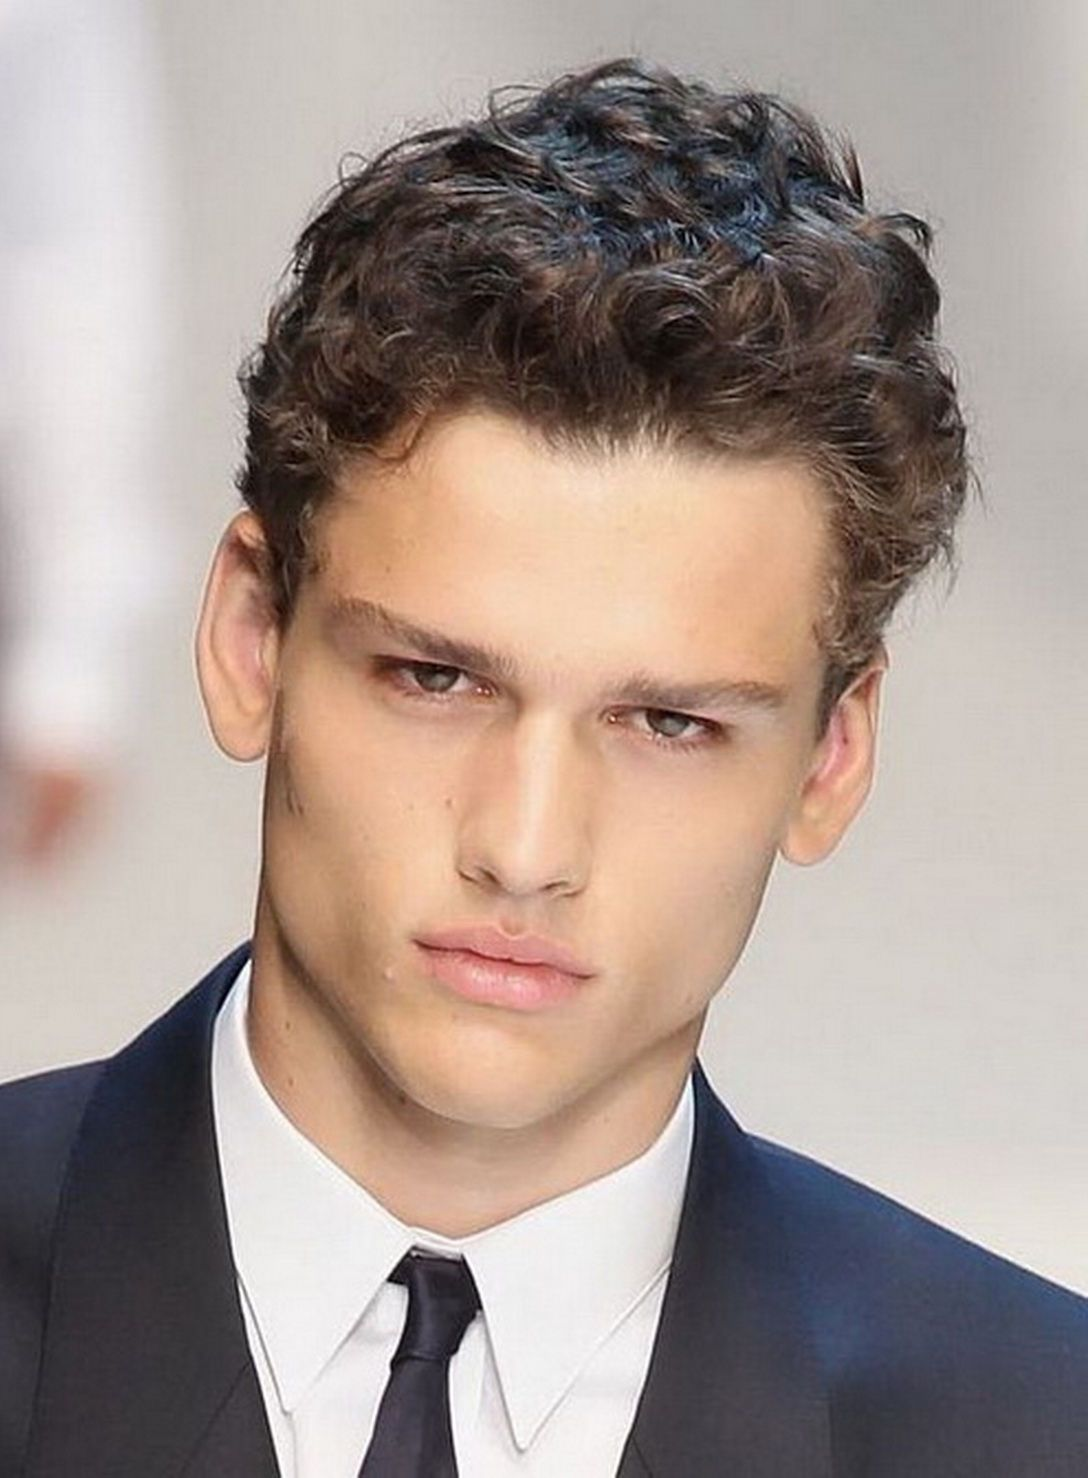 Men S Hairstyles Thick Curly Curly Hairstyles For Men Thick Hair New Hair Trends Wallpaper Boys Curly Haircuts Men S Curly Hairstyles Curly Hair Men